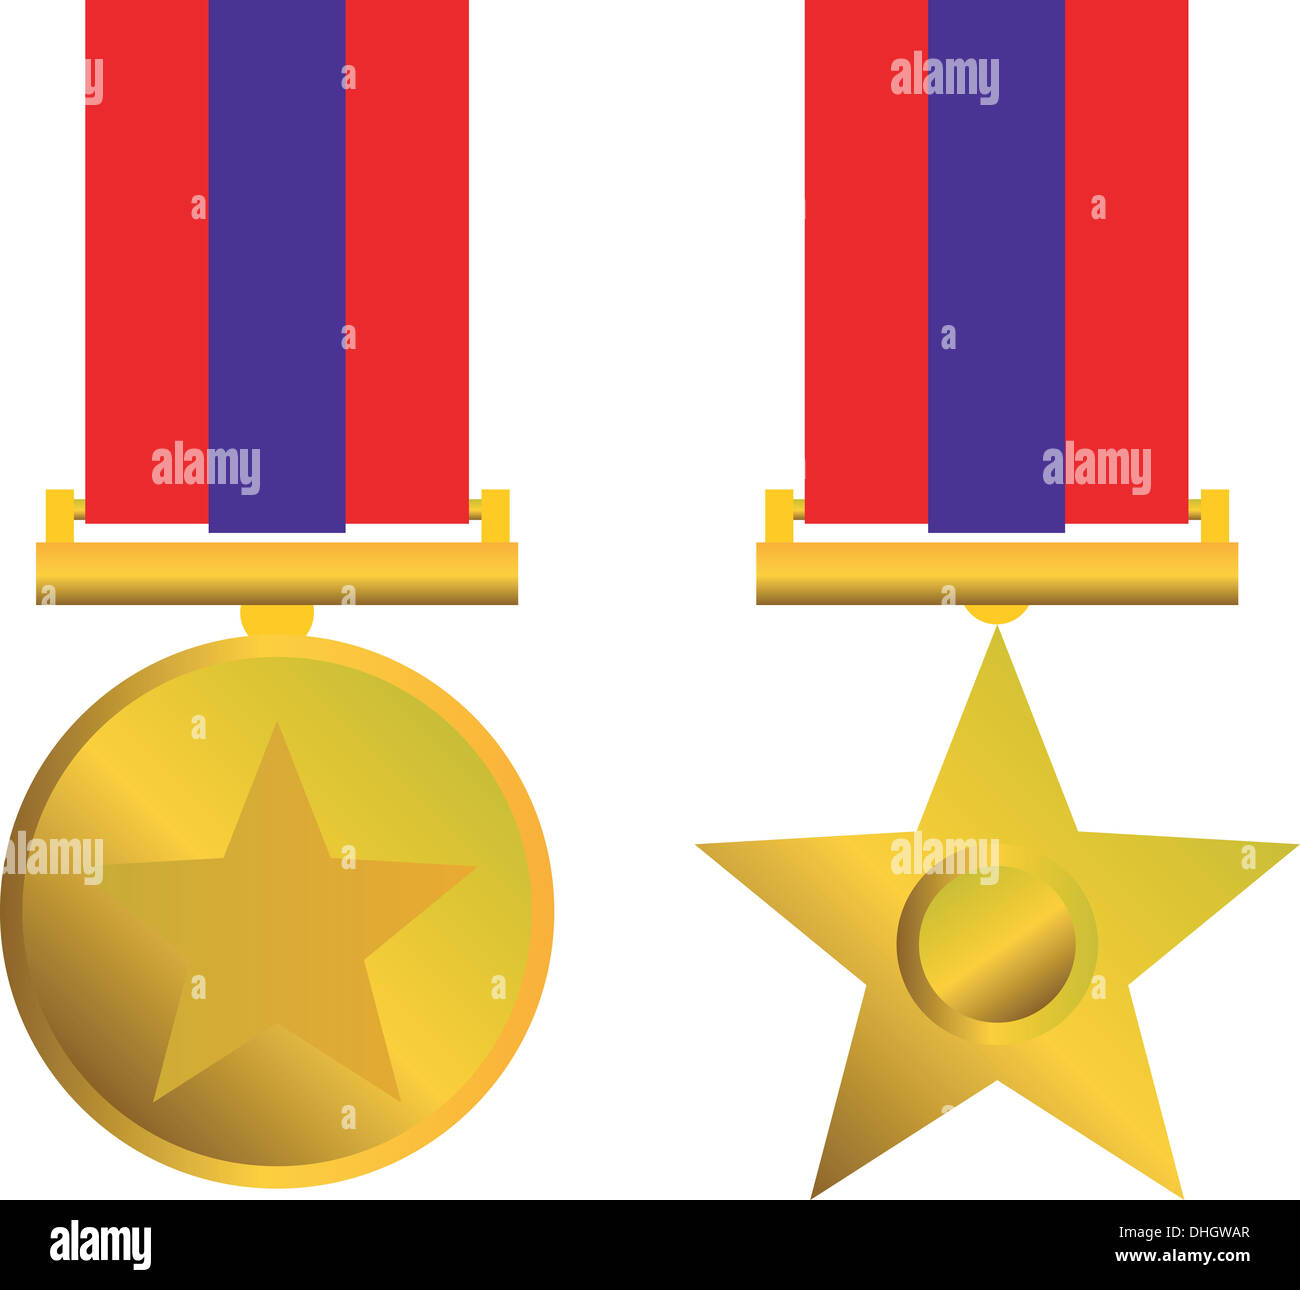 Illustration of a military medal of honor for bravery in combat on isolated white background. Stock Photo